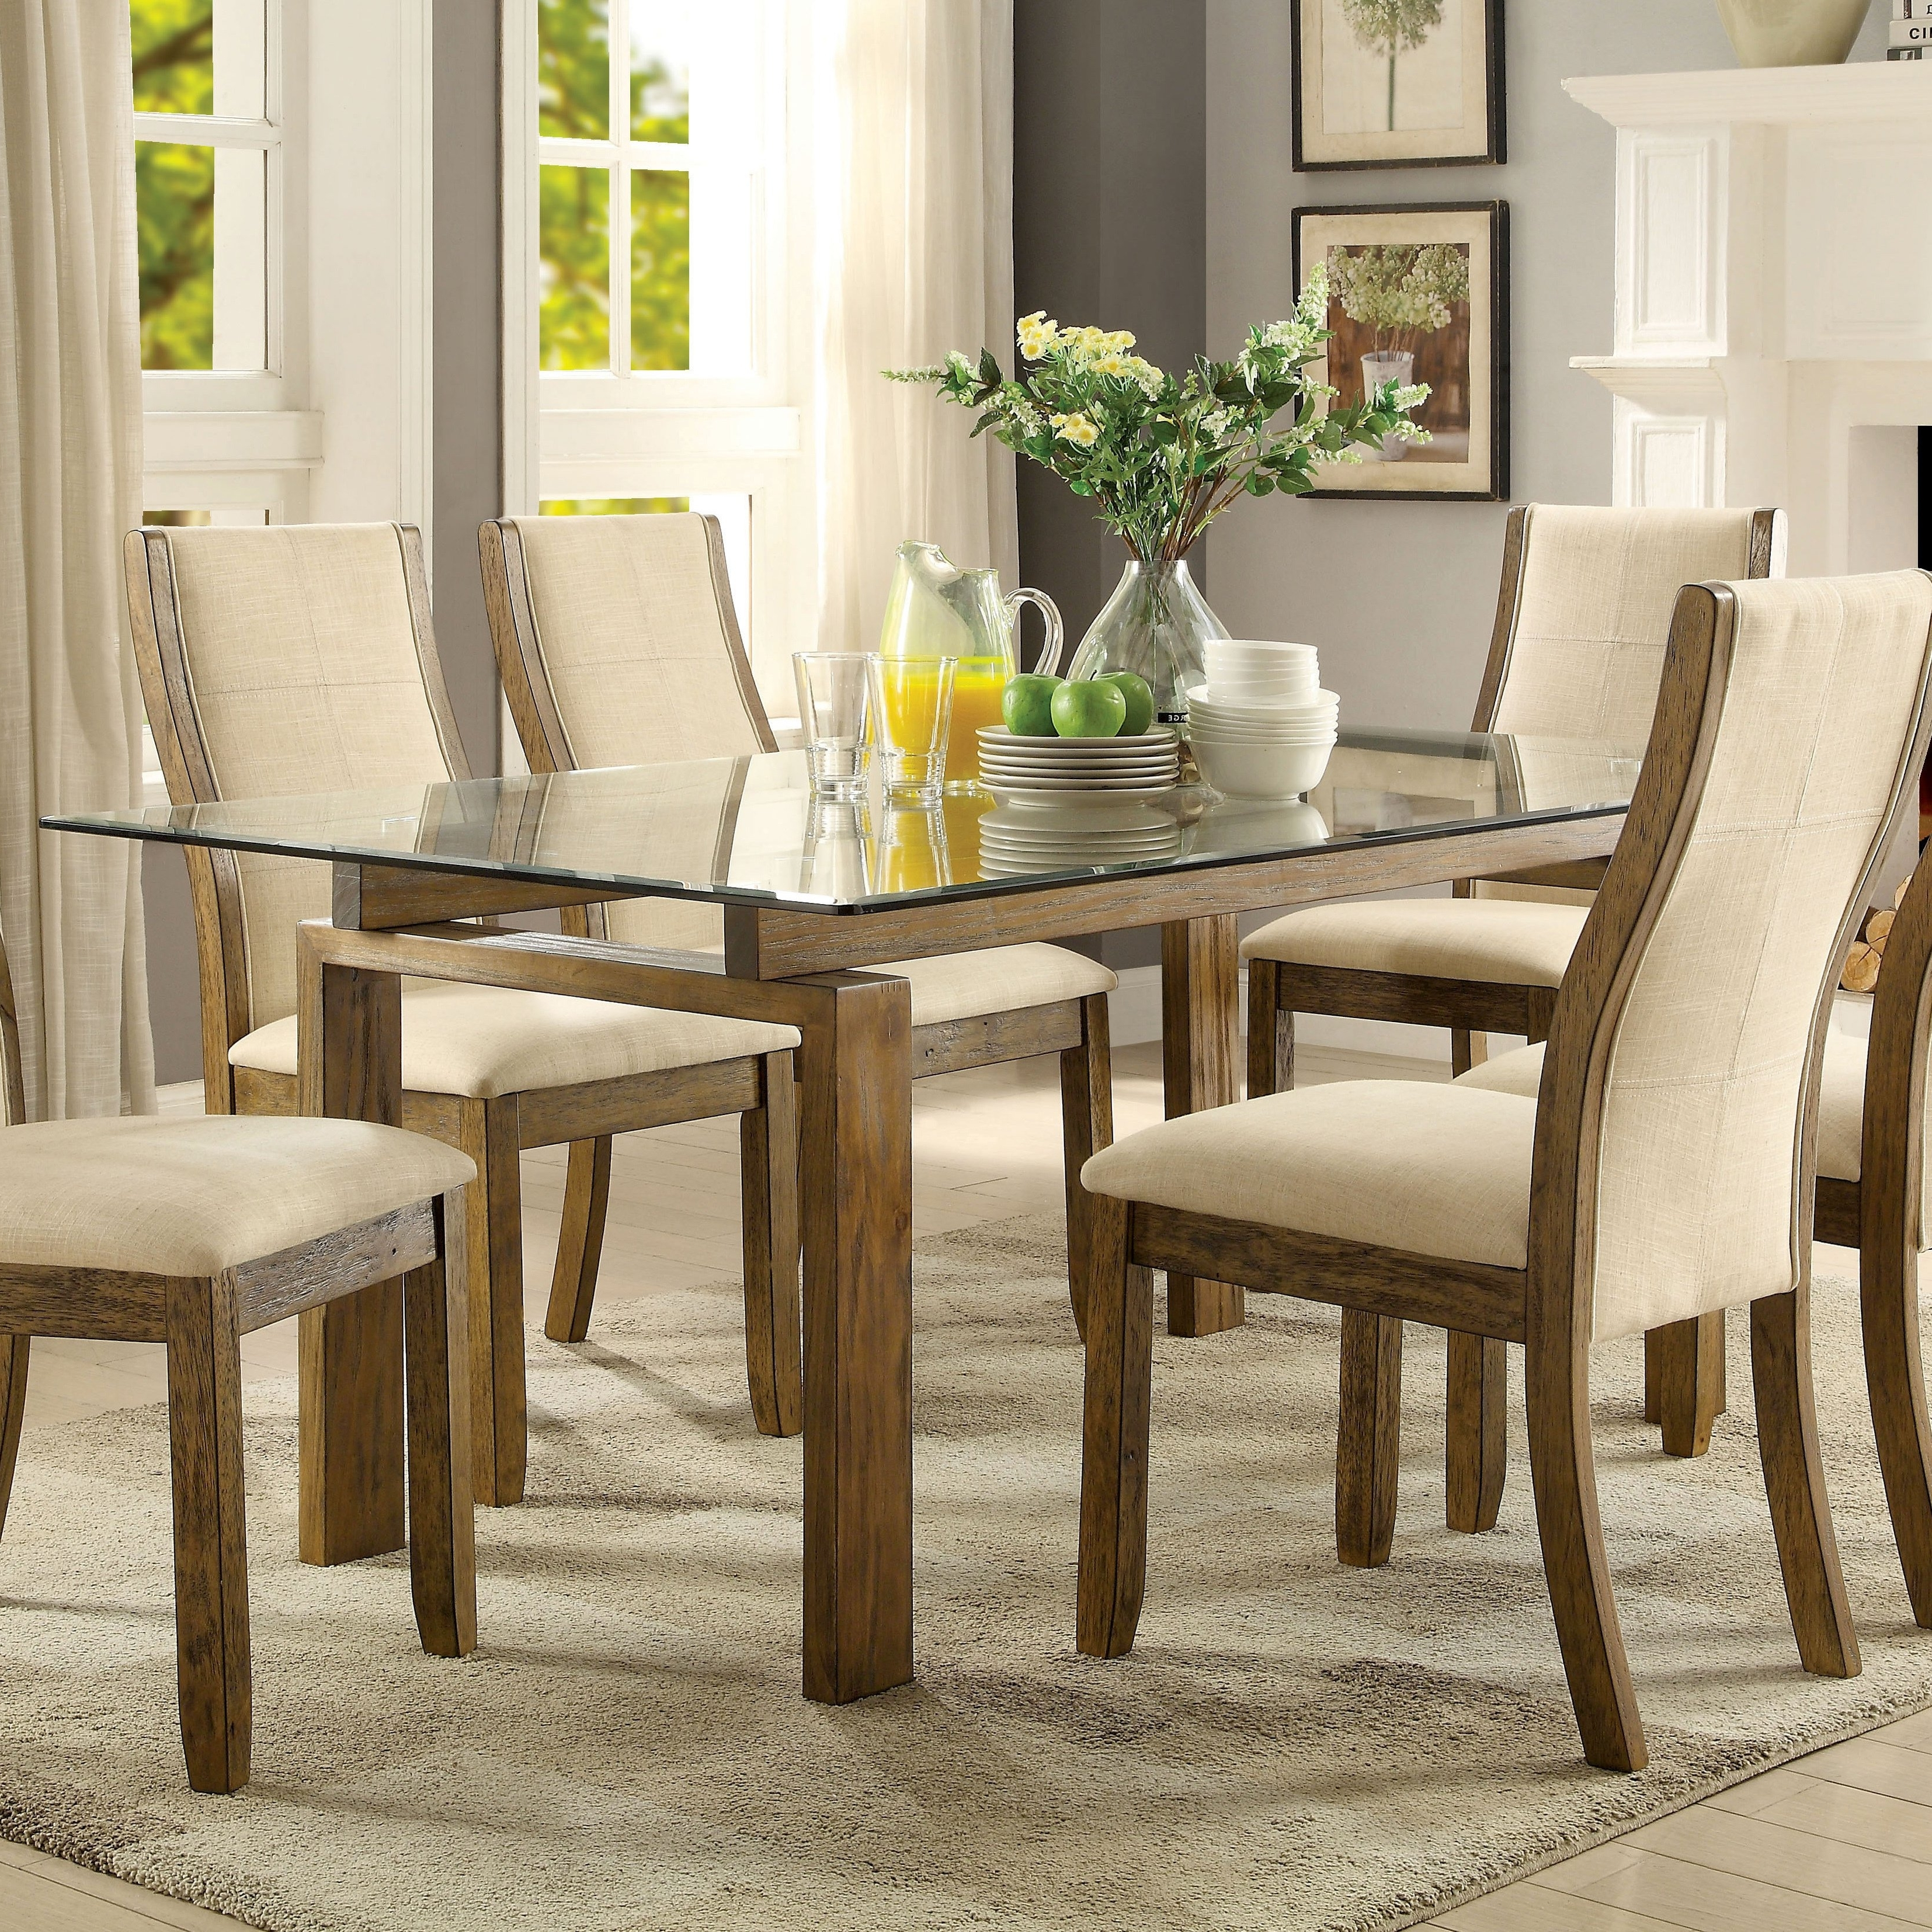 Most Recently Released Shop Furniture Of America Lenea Contemporary Glass Top Oak Dining With Glass And Oak Dining Tables And Chairs (View 14 of 25)